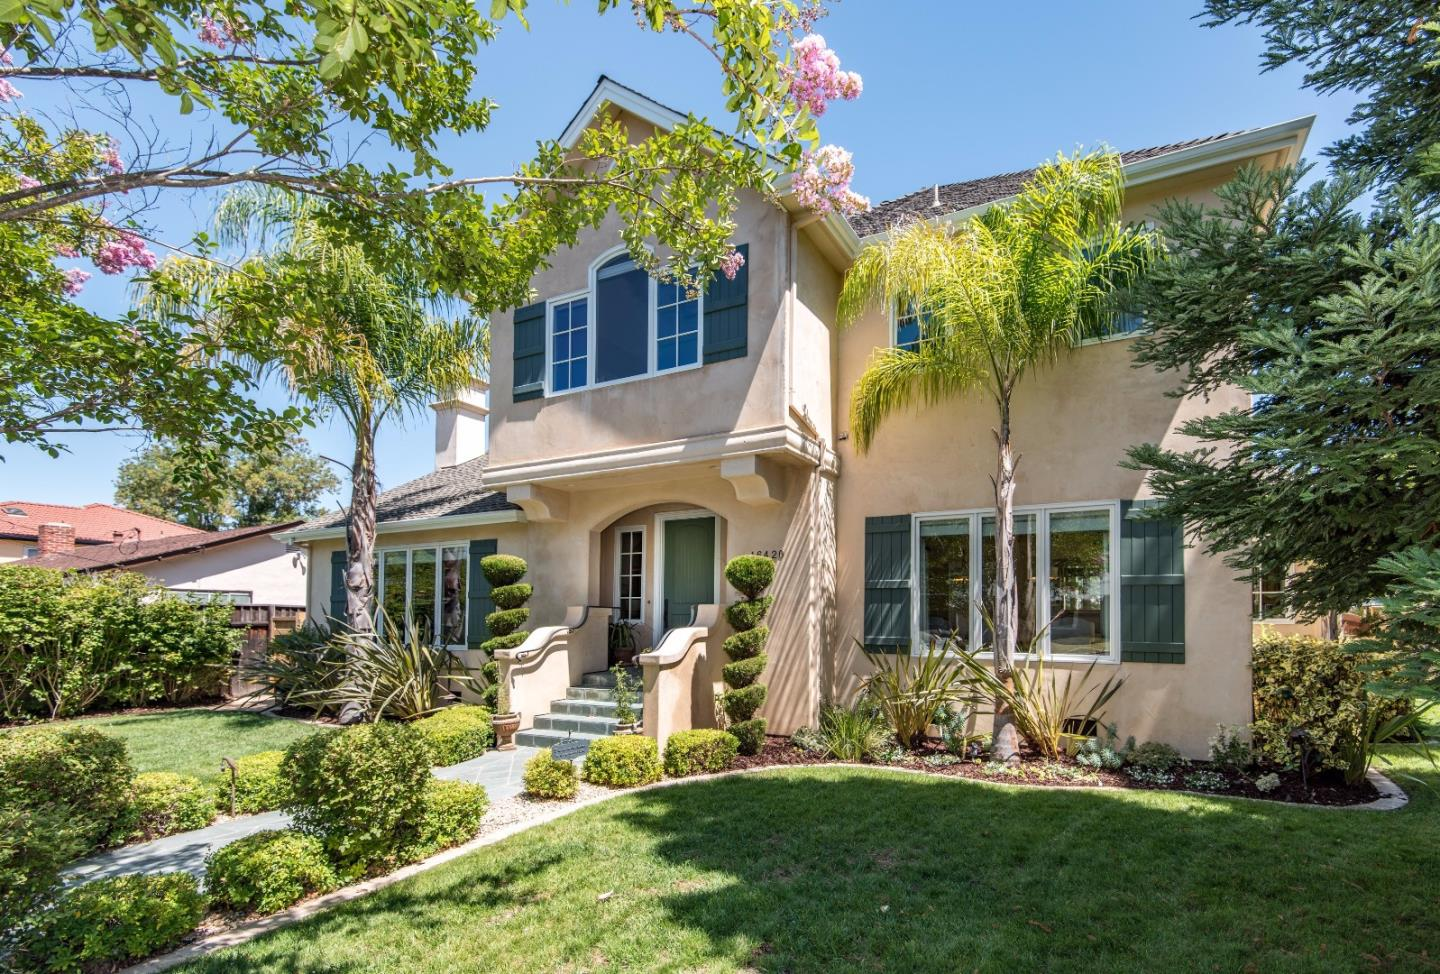 واحد منزل الأسرة للـ Sale في 16420 W LA CHIQUITA Avenue Los Gatos, California 95032 United States